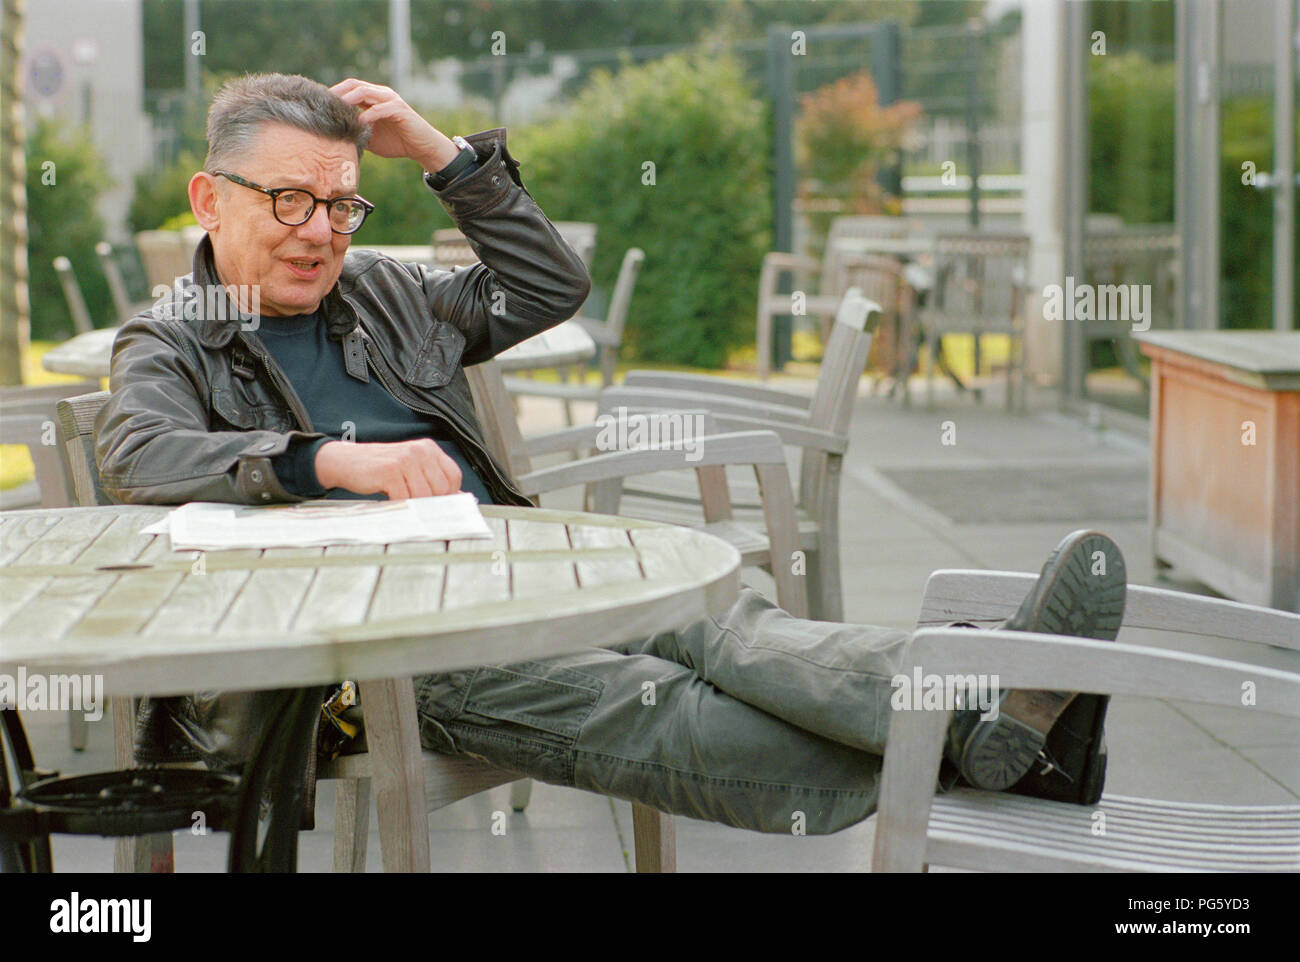 Andrzej Bart (filmmaker and author - Poland) - 03/25/2011 - Stock Image